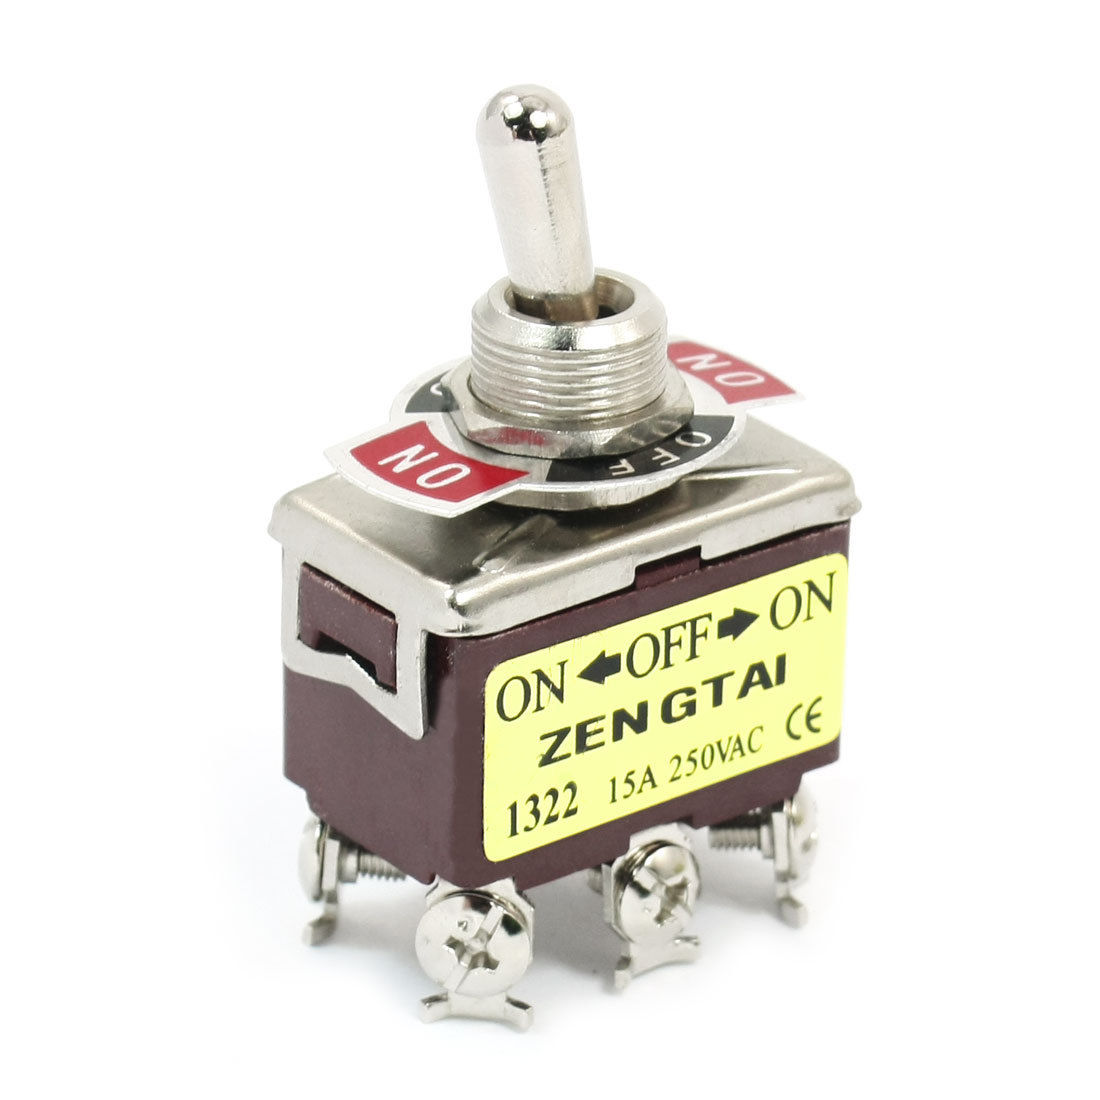 12v toggle switch wiring diagram for dirt late model trusted 12v toggle switch wiring diagram for dirt late model wiring library 12v toggle switch wiring diagram